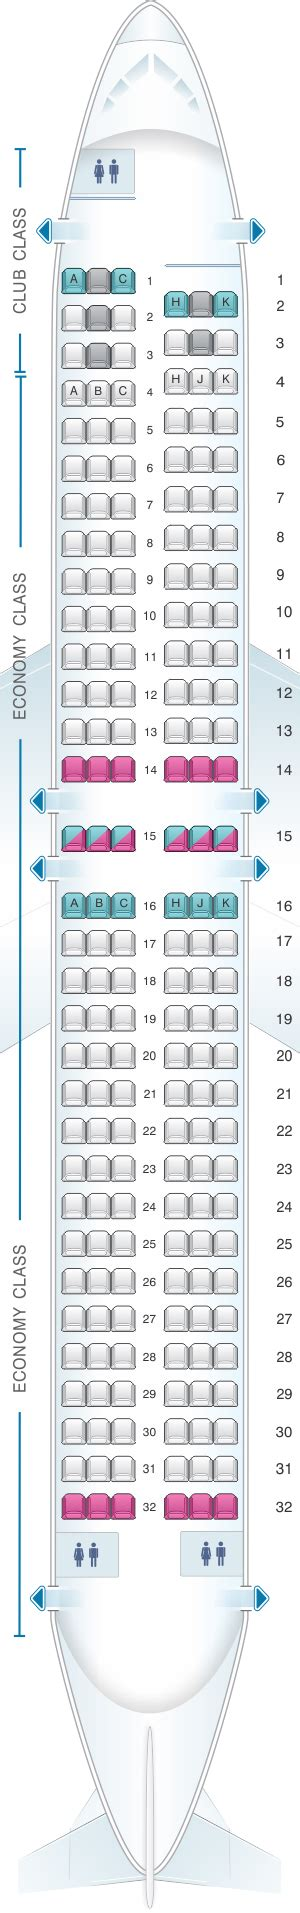 selection siege air transat air transat seating 737 napma